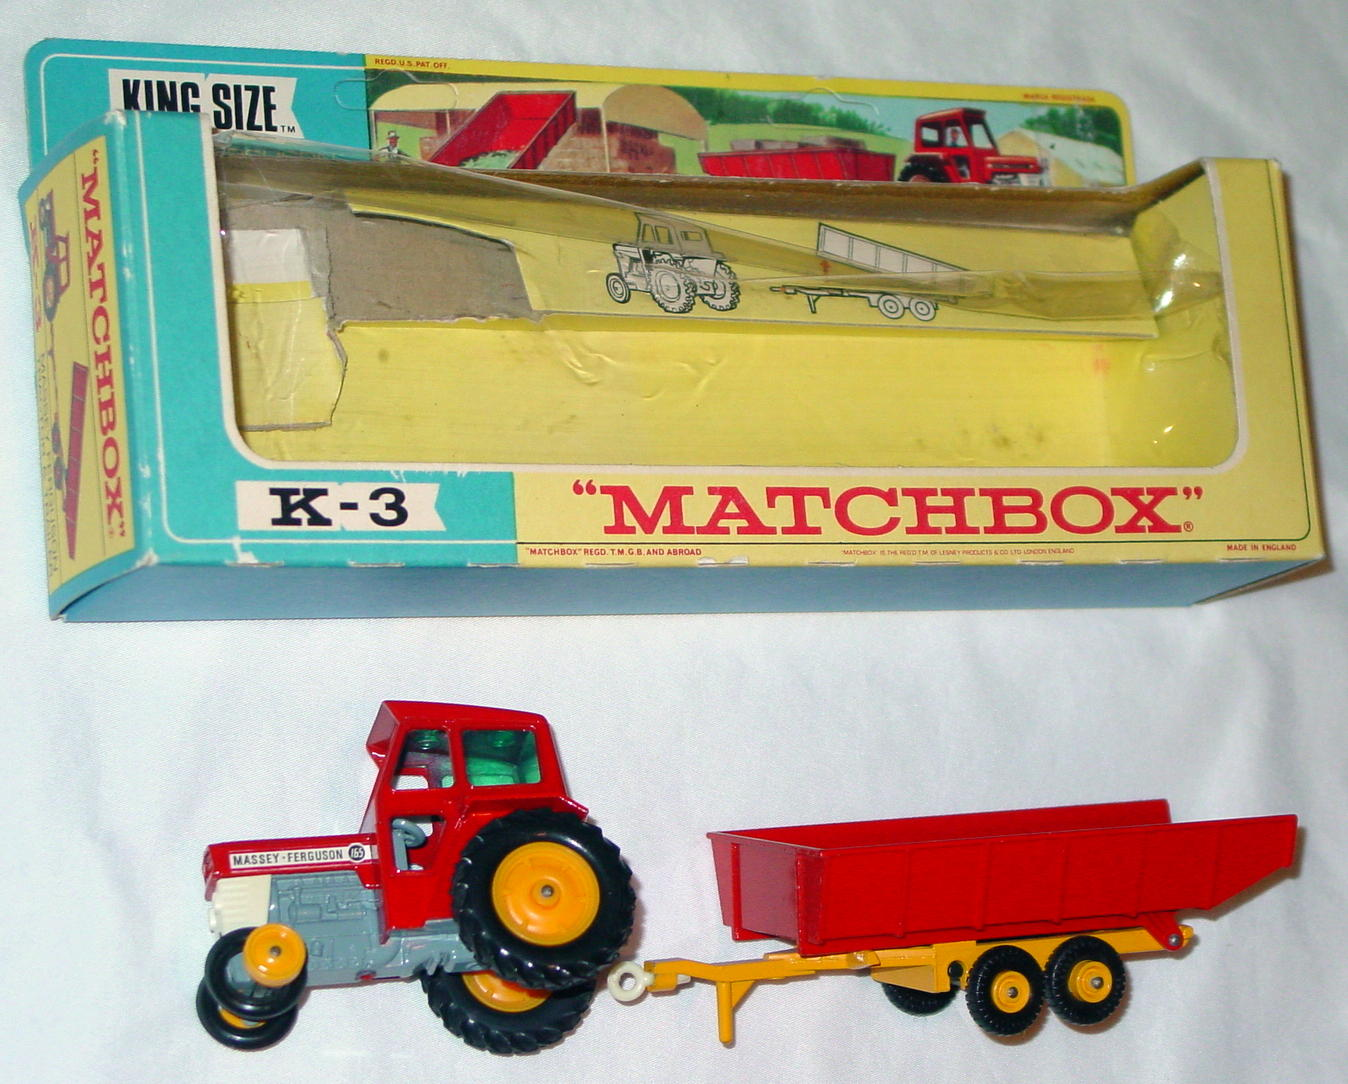 King Size 03 C 1 - Massey Tractor/trailer C9 window box